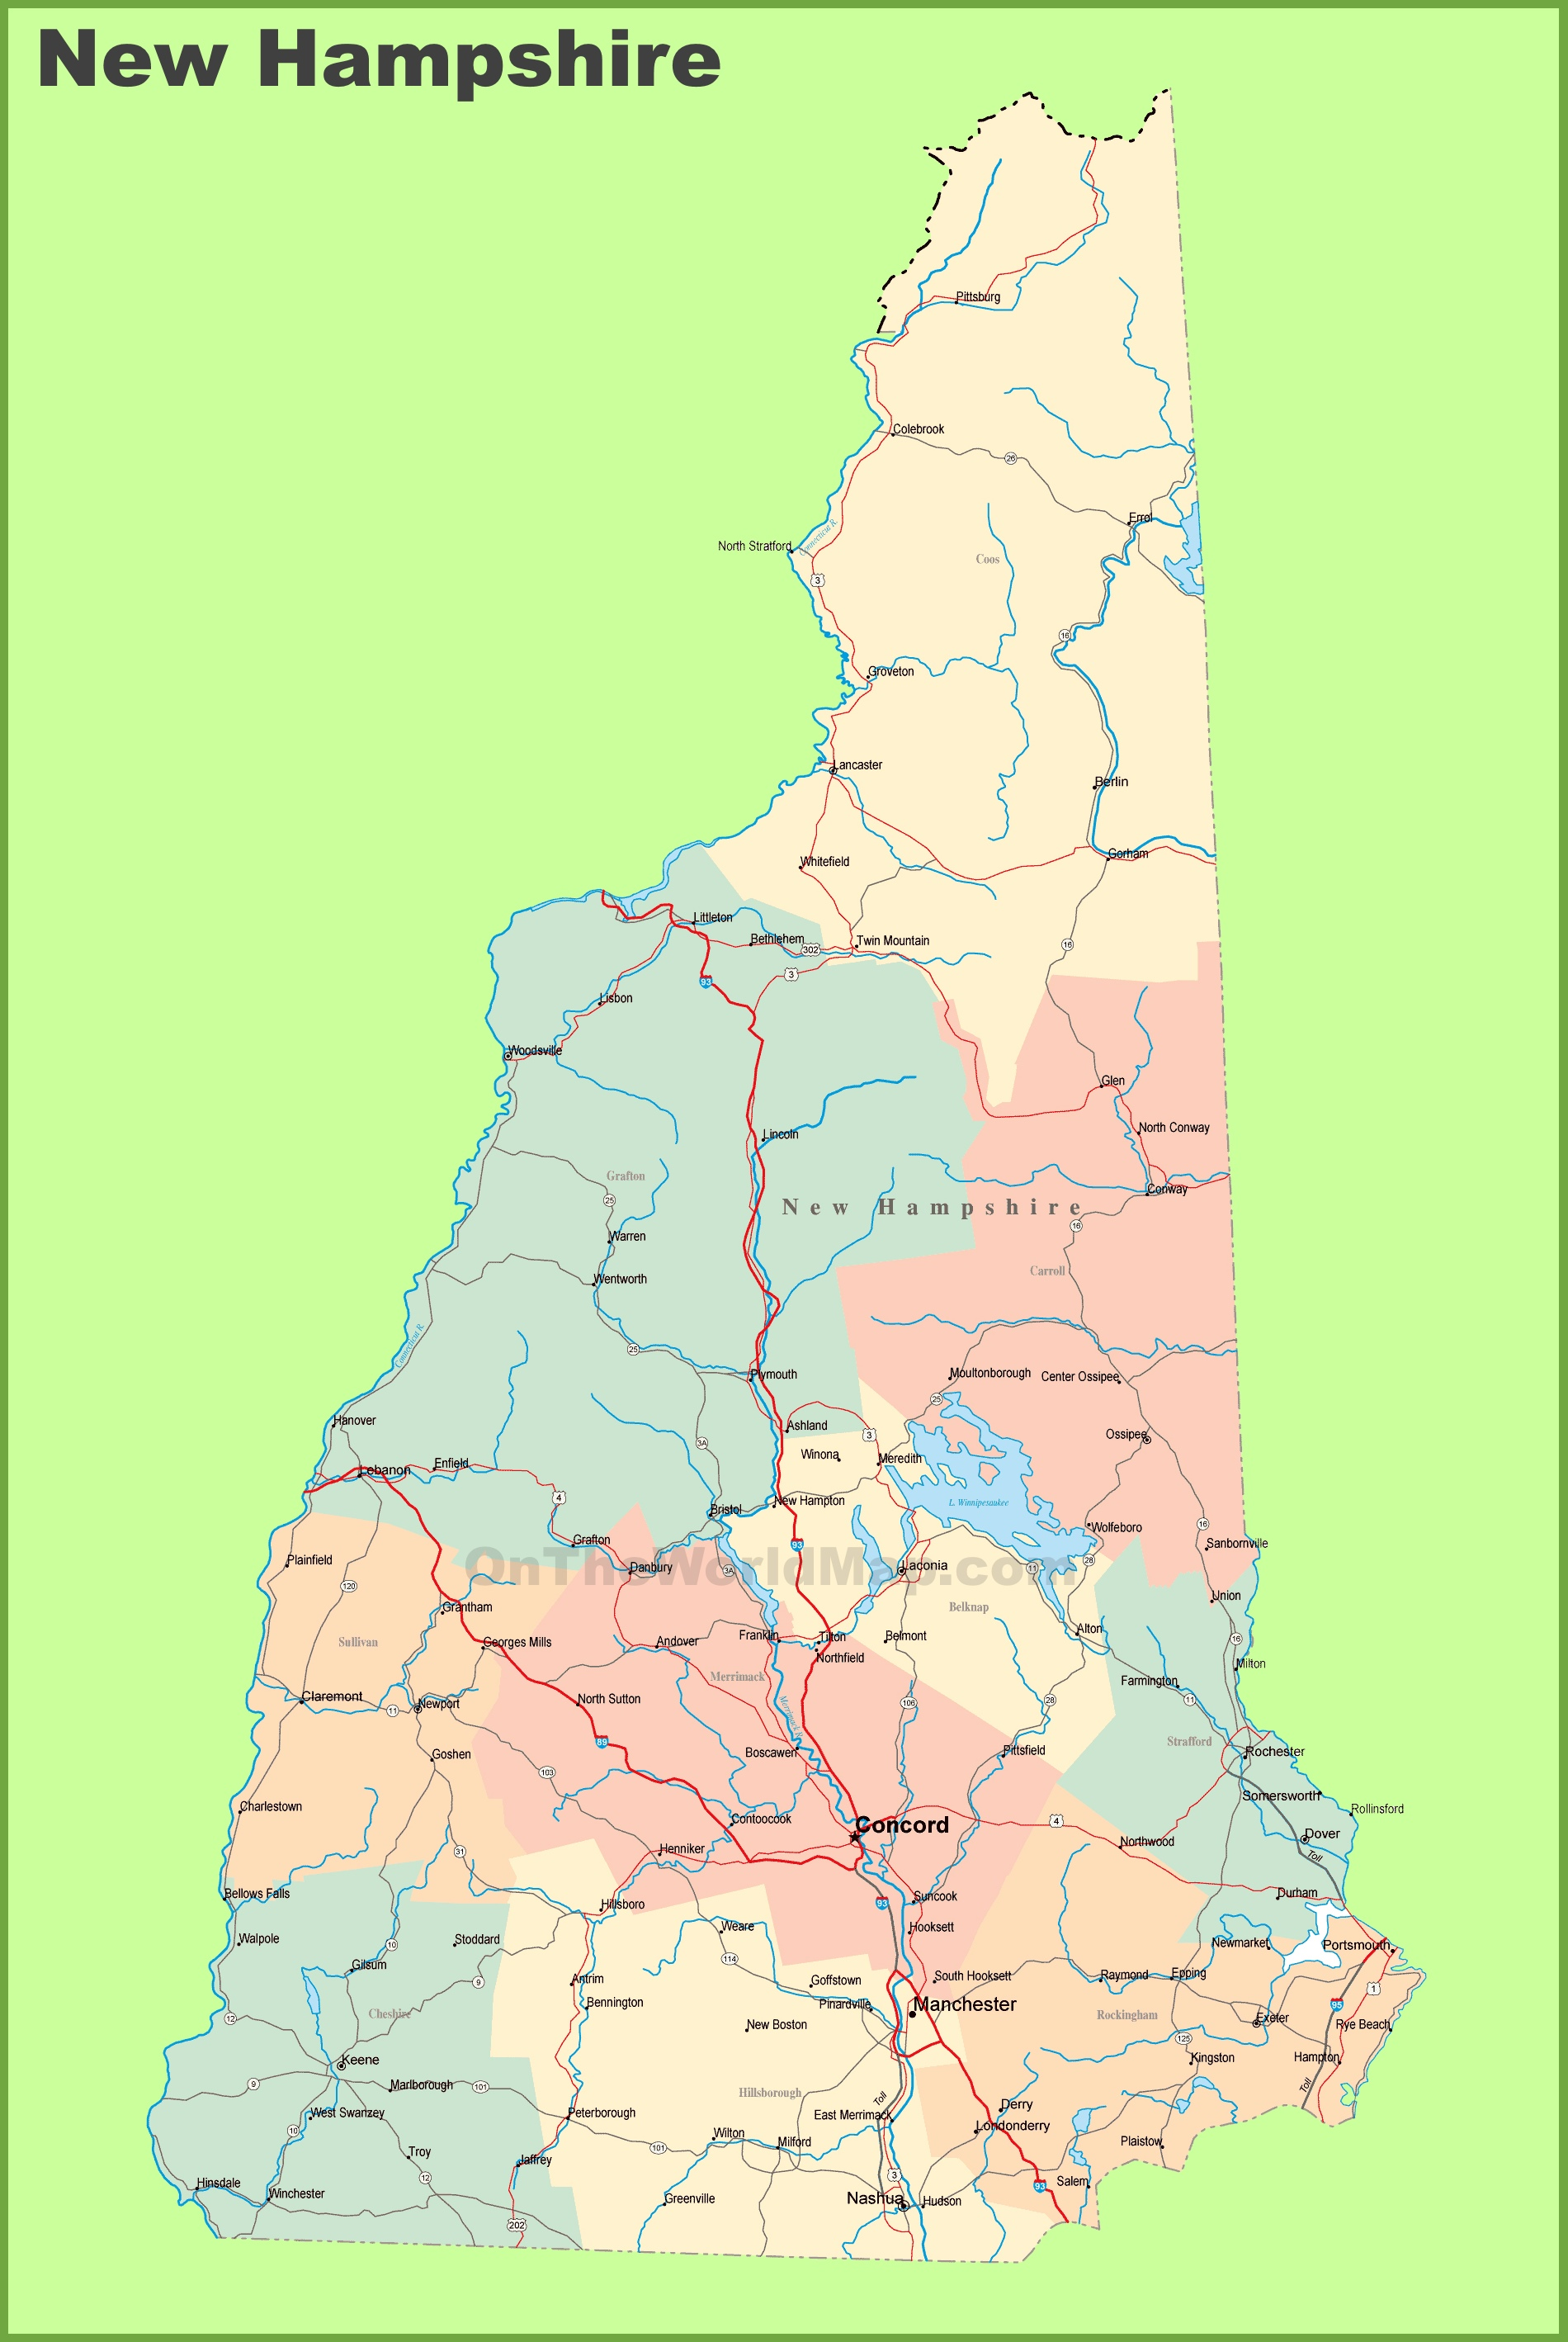 Road Map Of New Hampshire With Cities - New hampshire on the map of usa